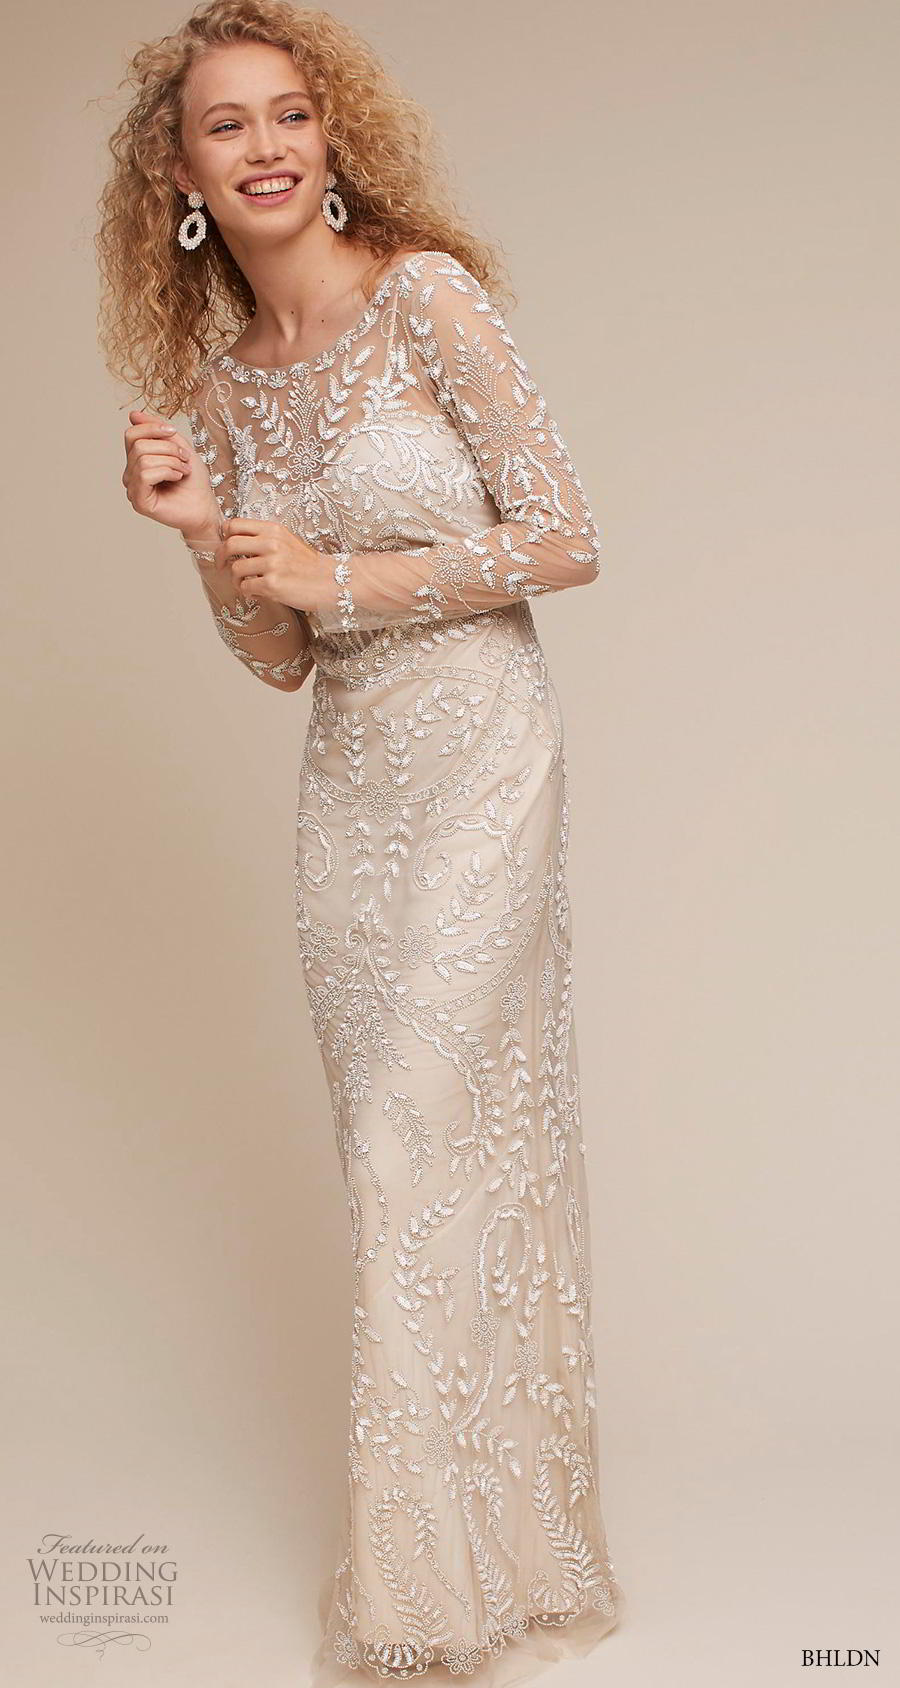 bhldn 2018 own bridal long sleeves bateau neck full embellishment elegant sheath weddomg dress v back sheath train (9) mv